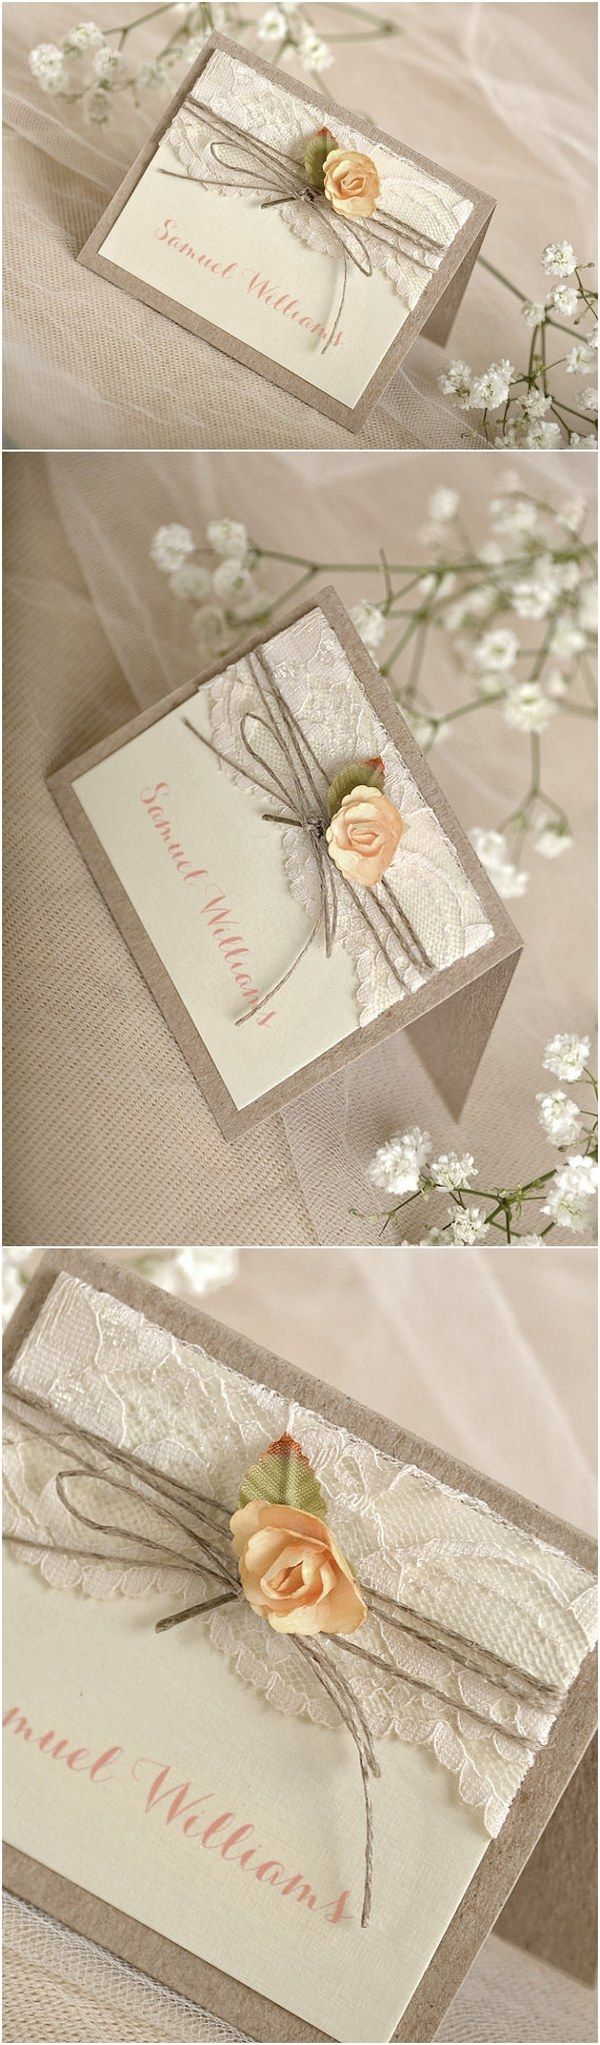 653 best *Escort Cards & Place Cards* images on Pinterest | Weddings ...